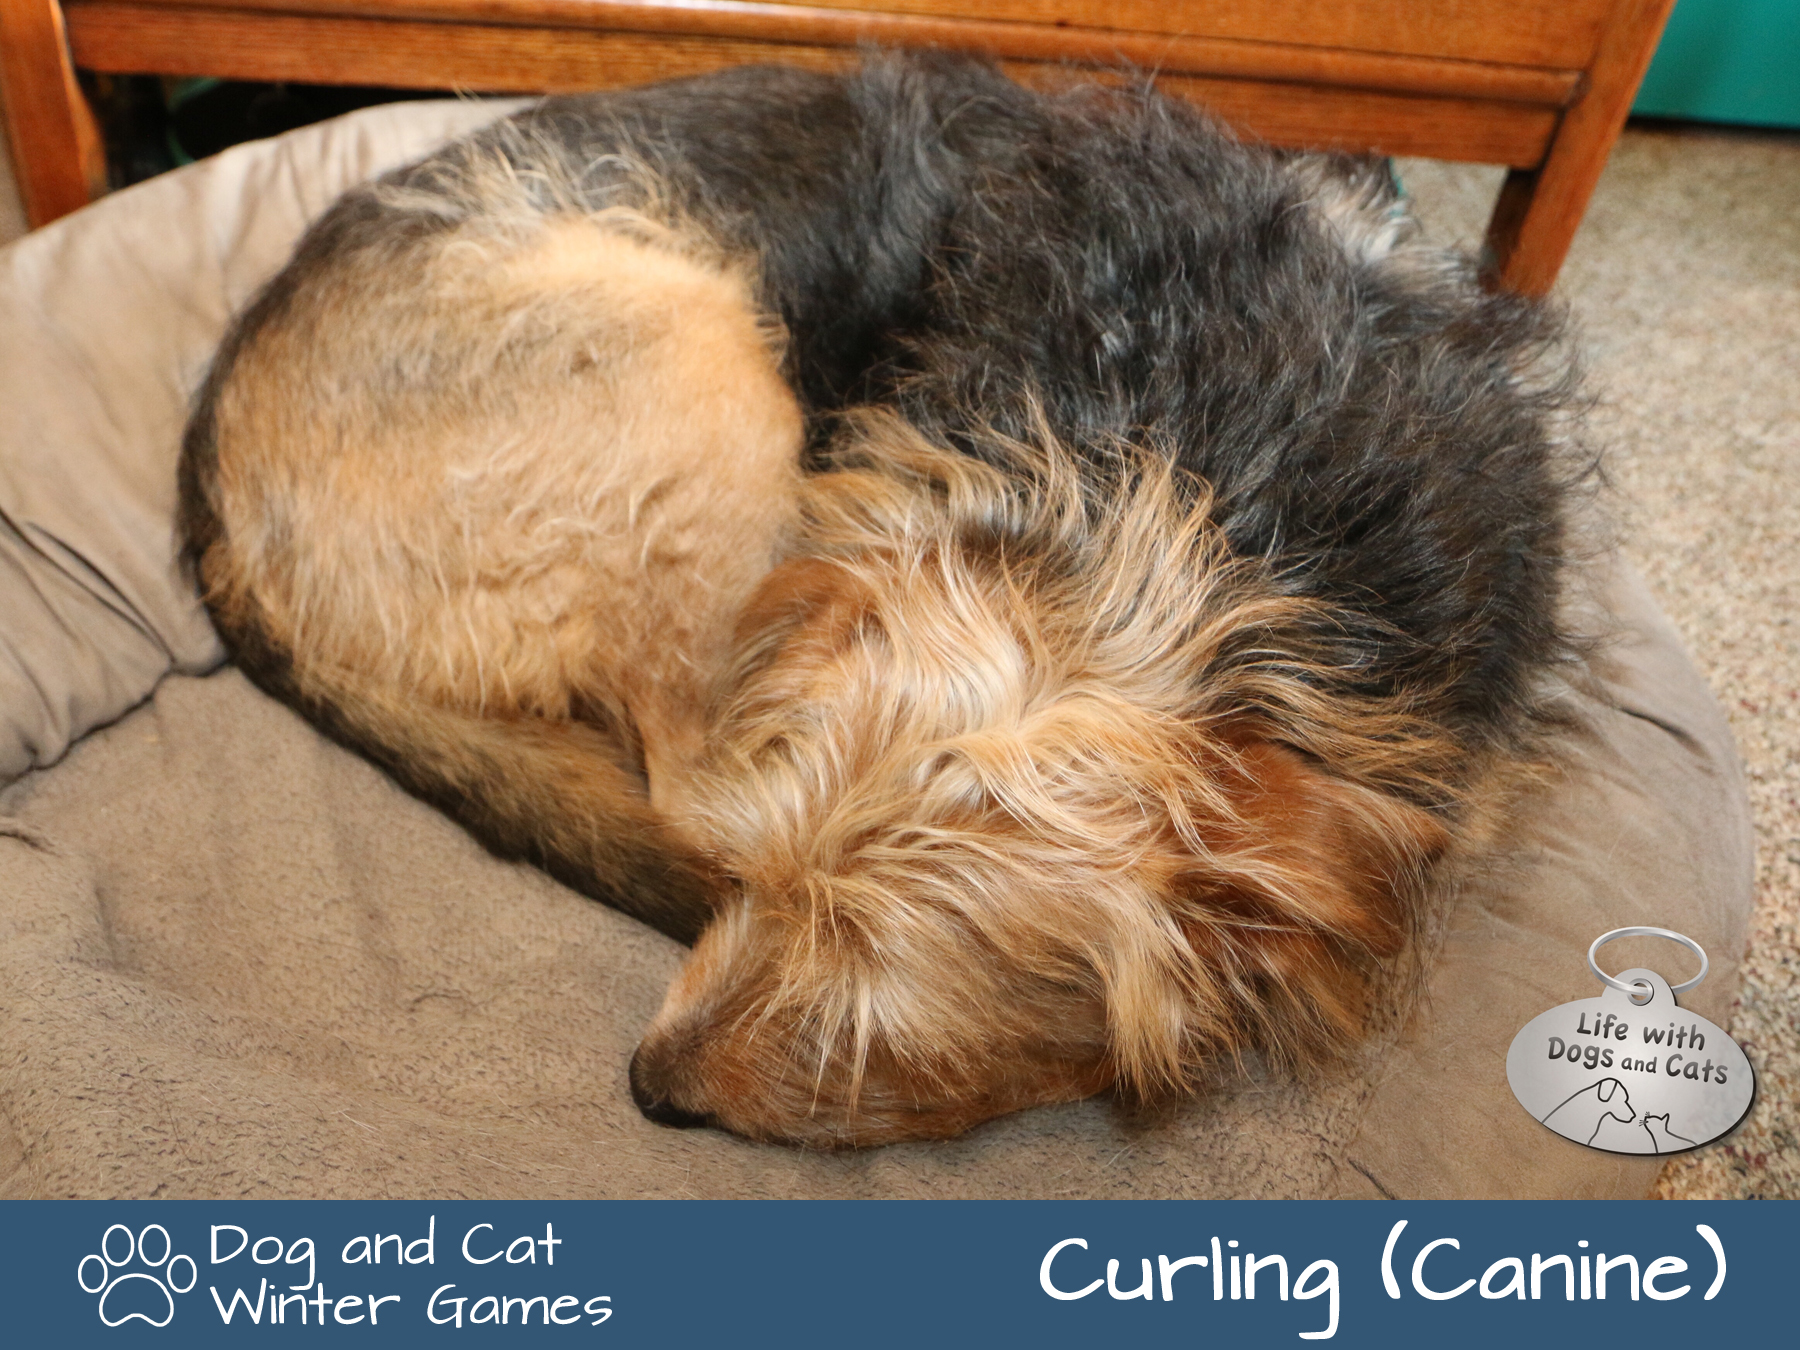 Dog and Cat Winter Games: Curling (Canine)